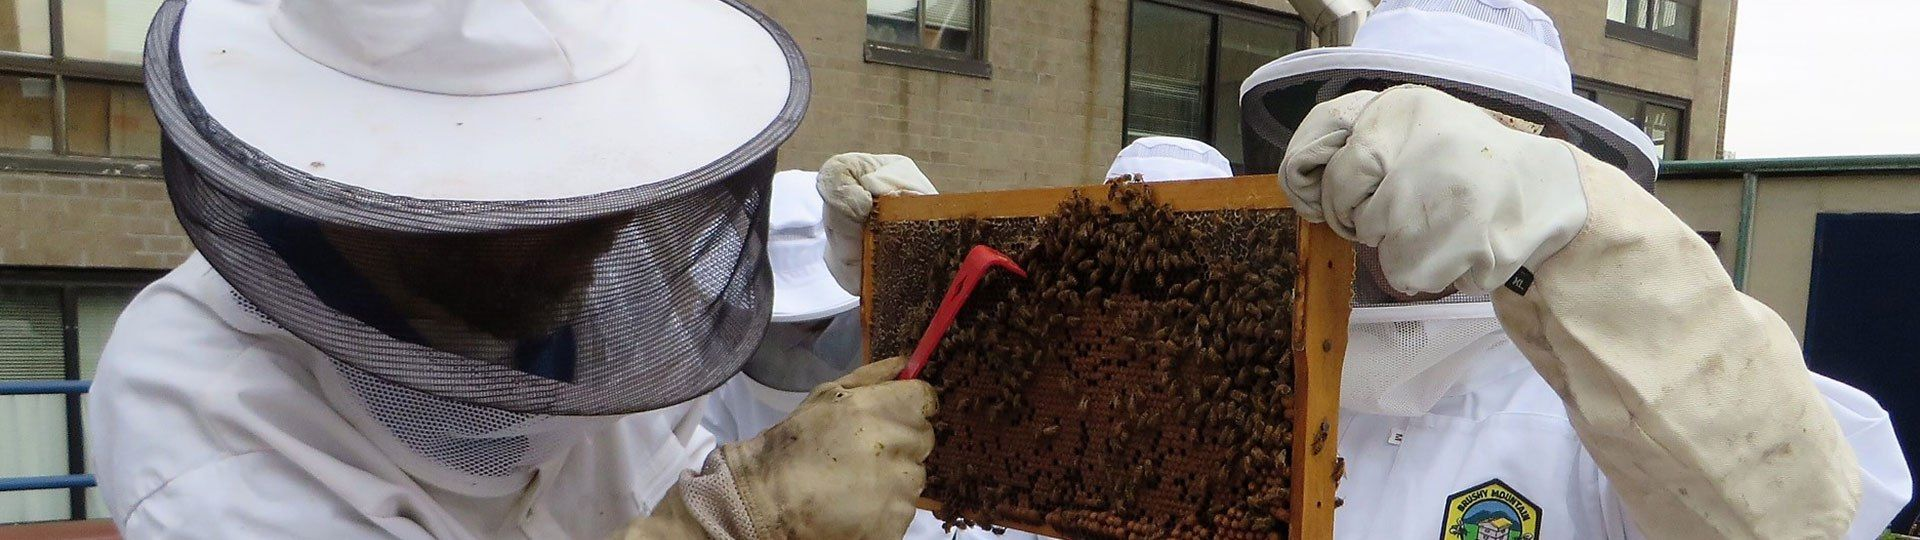 York Prep beekeeping club